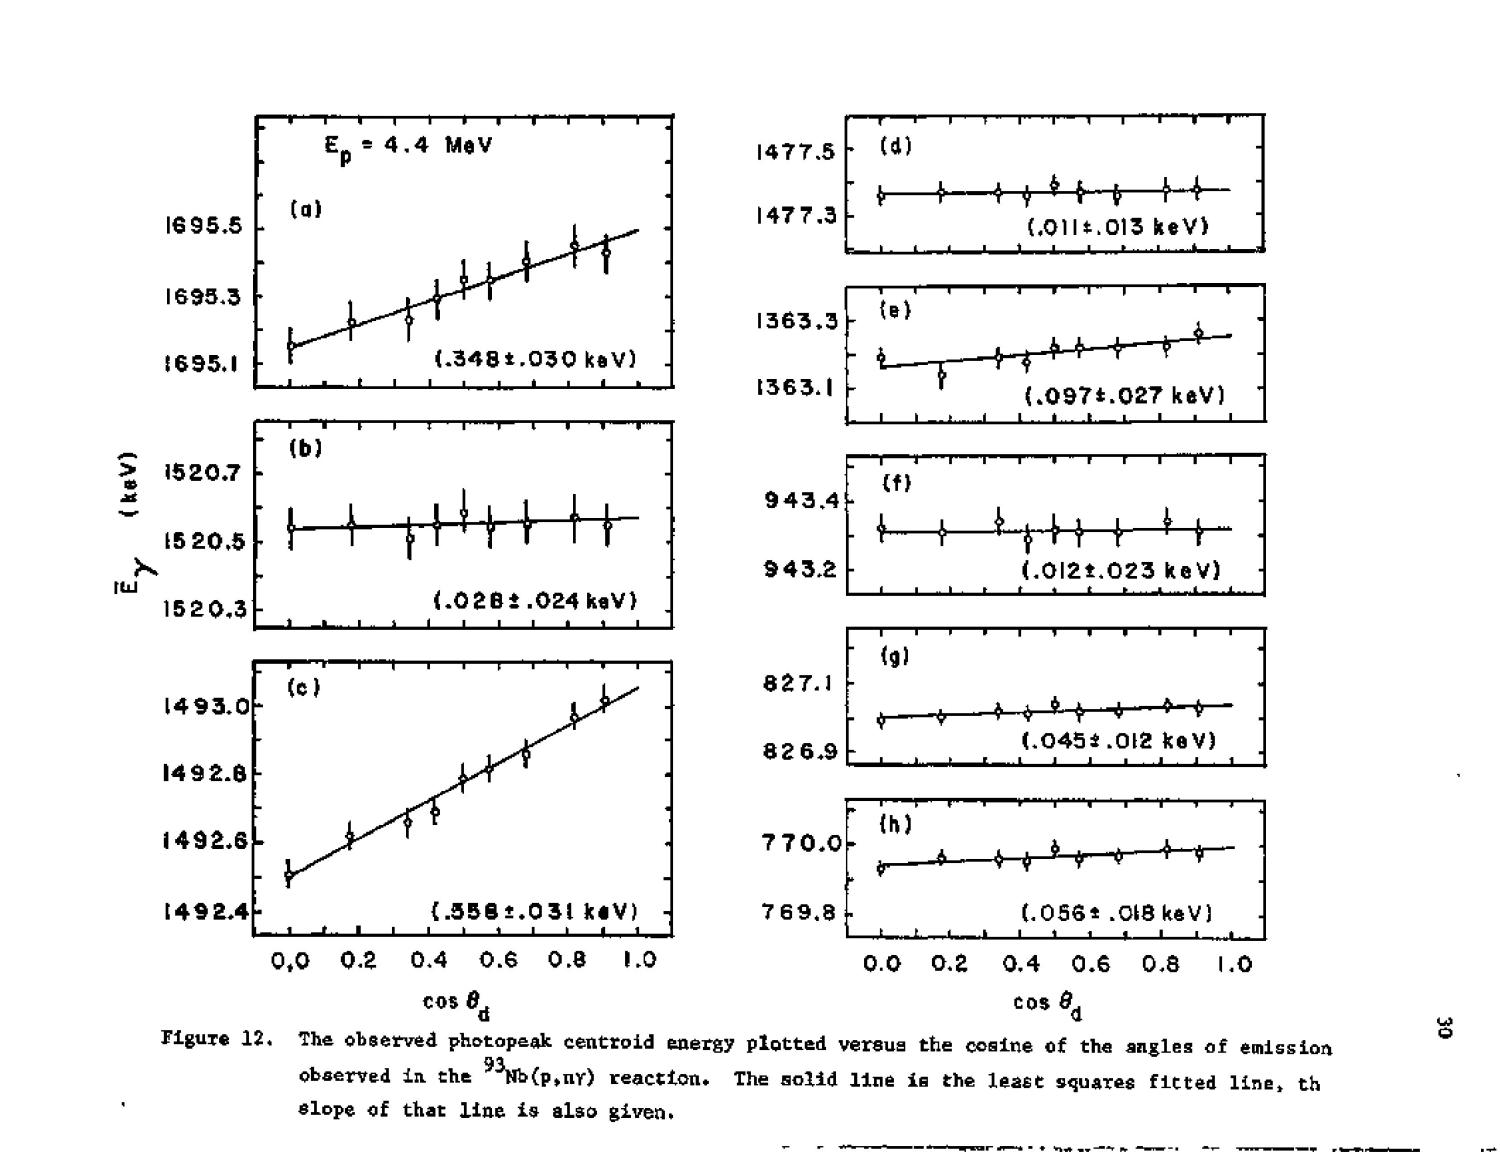 Spectroscopy of nuclear systems. Progress report, January 1--December 31, 1974                                                                                                      [Sequence #]: 36 of 53